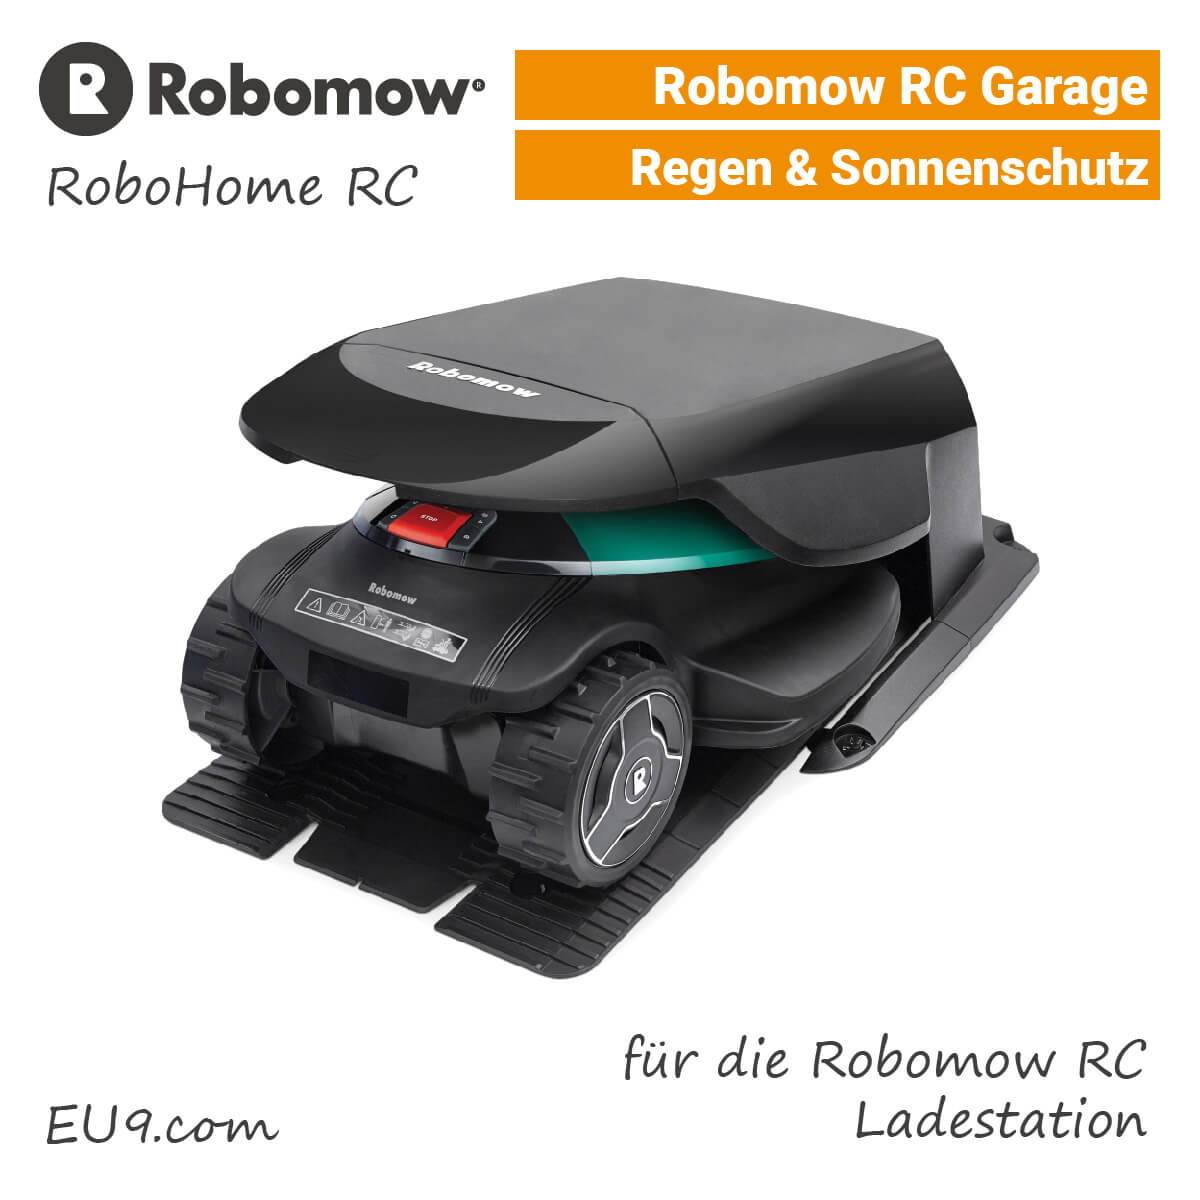 robomow robohome rc mc m hroboter garage bei eu9 kaufen. Black Bedroom Furniture Sets. Home Design Ideas